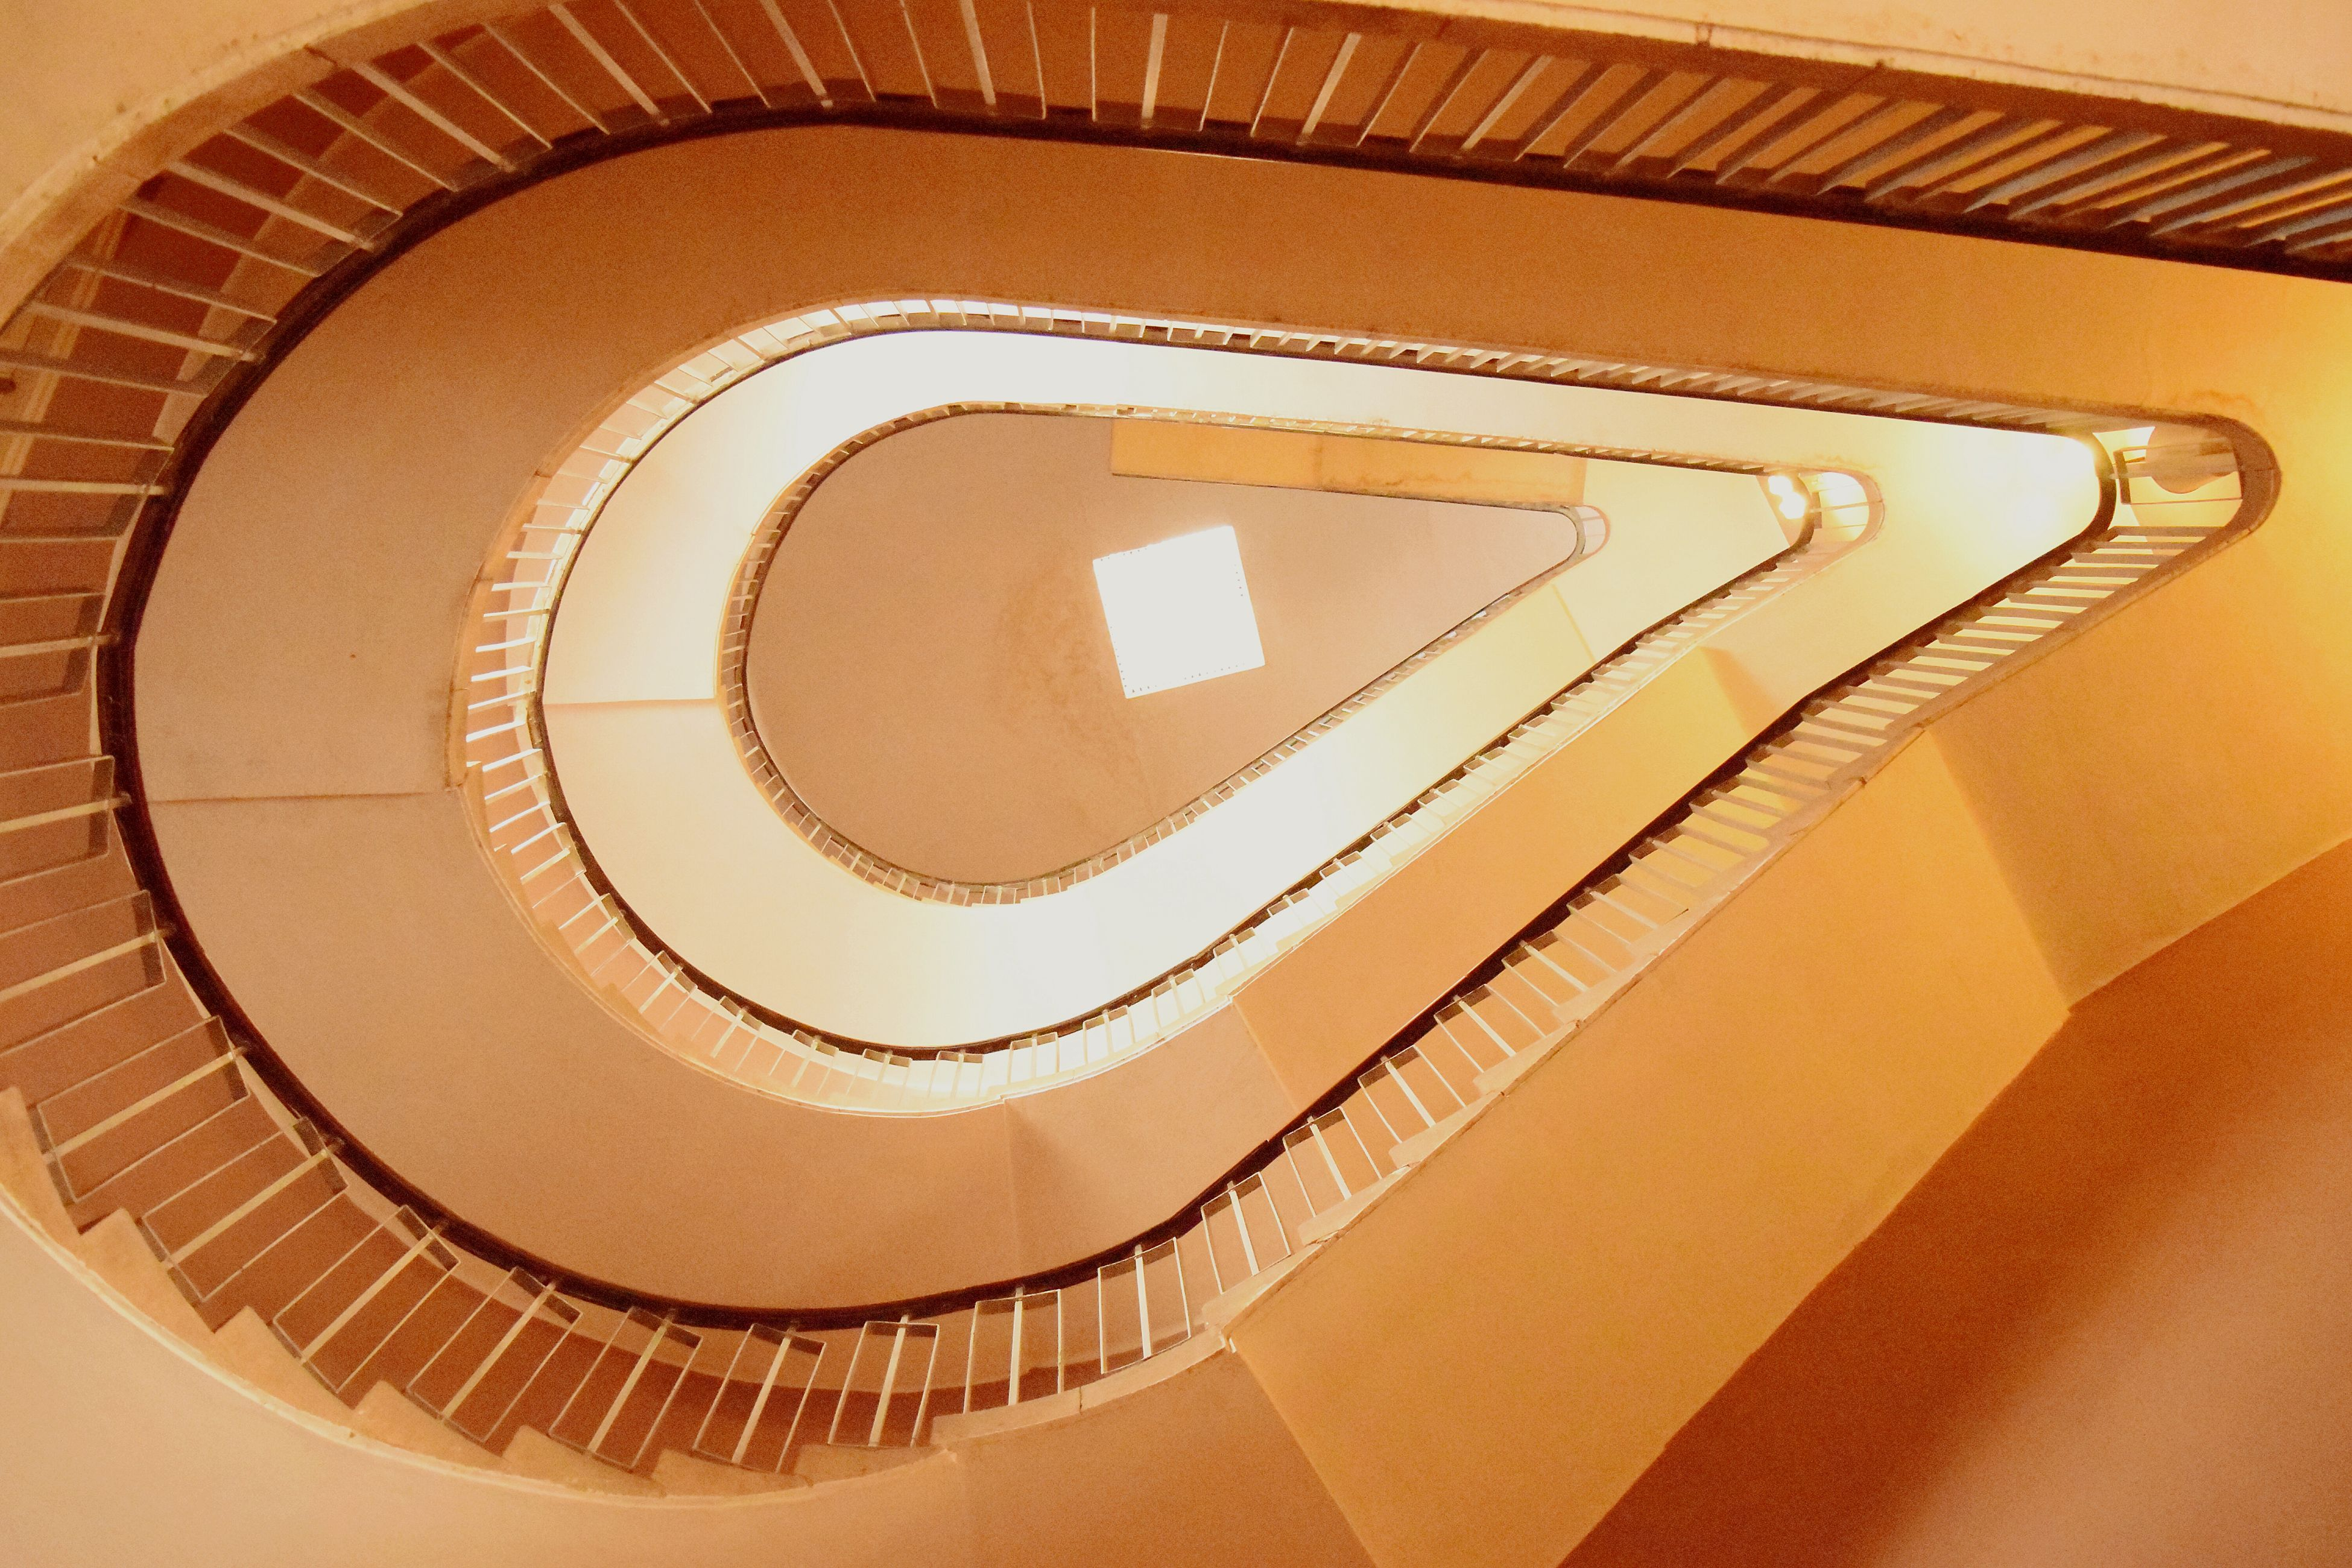 steps and staircases, staircase, steps, indoors, spiral, spiral staircase, railing, architecture, built structure, pattern, design, high angle view, stairs, circle, no people, low angle view, repetition, close-up, geometric shape, wall - building feature